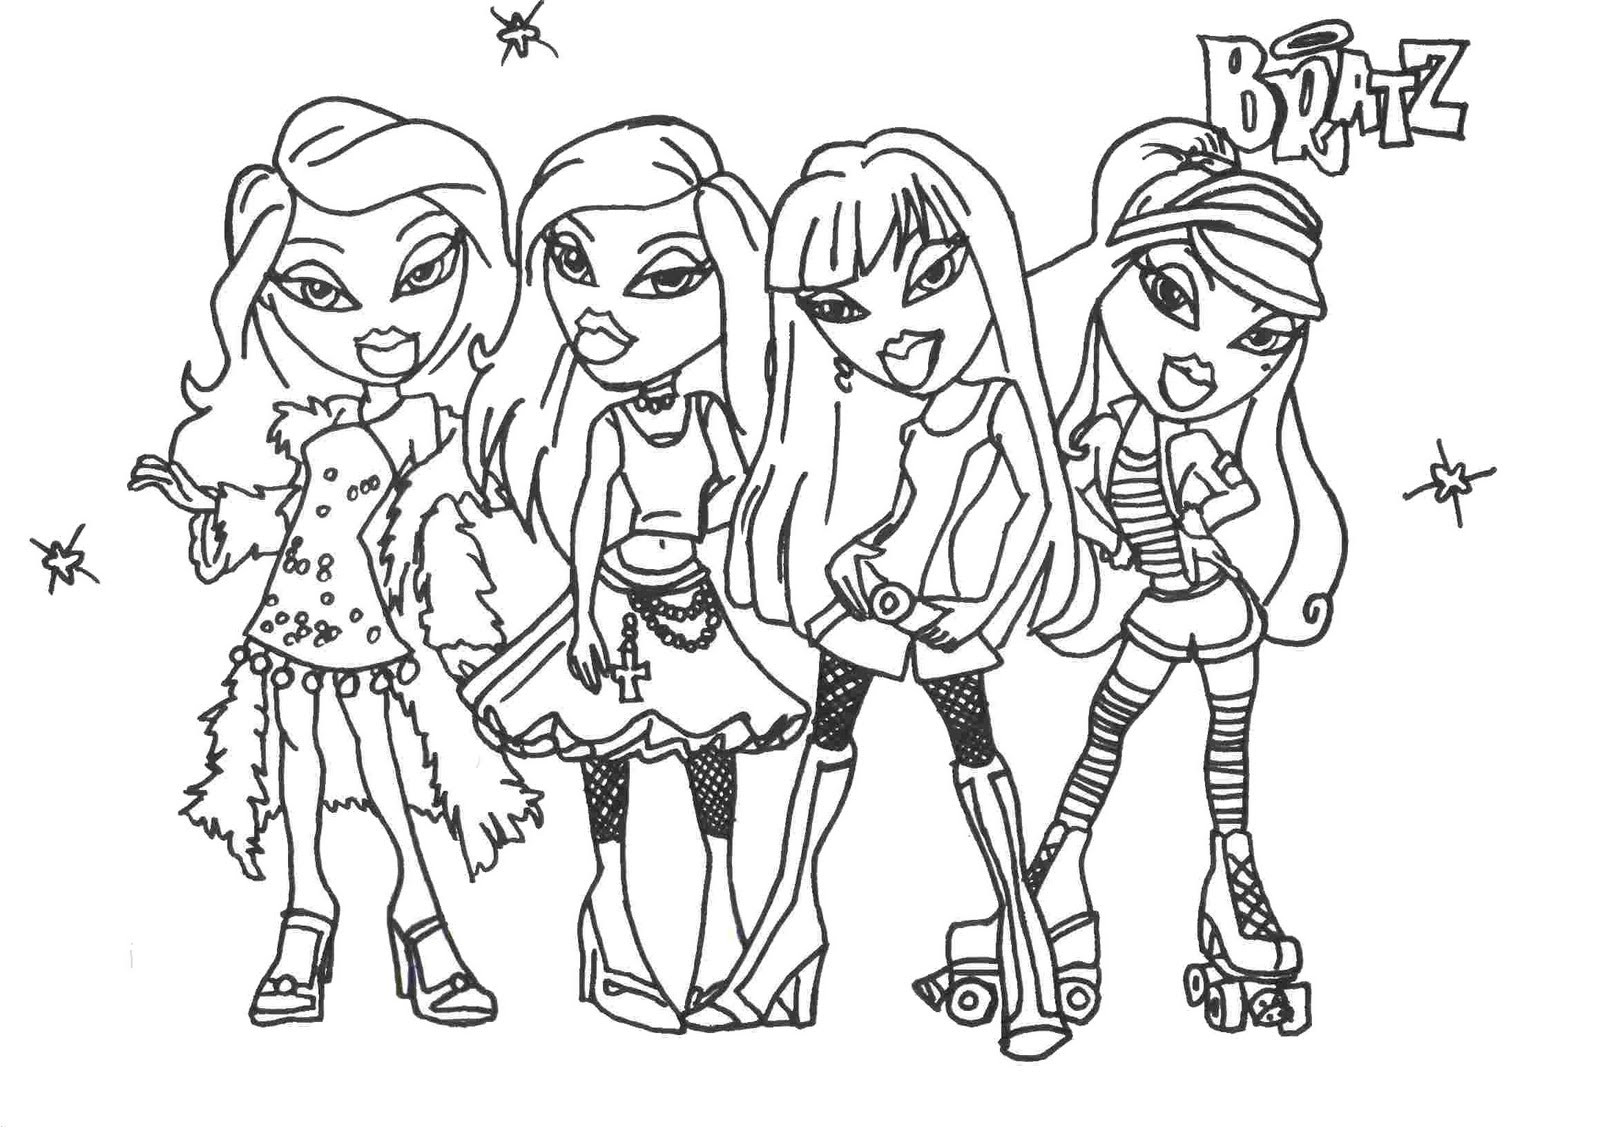 Best ideas about Coloring Sheets For Girls 8-10 . Save or Pin Coloring Pages For Girls 8 Now.